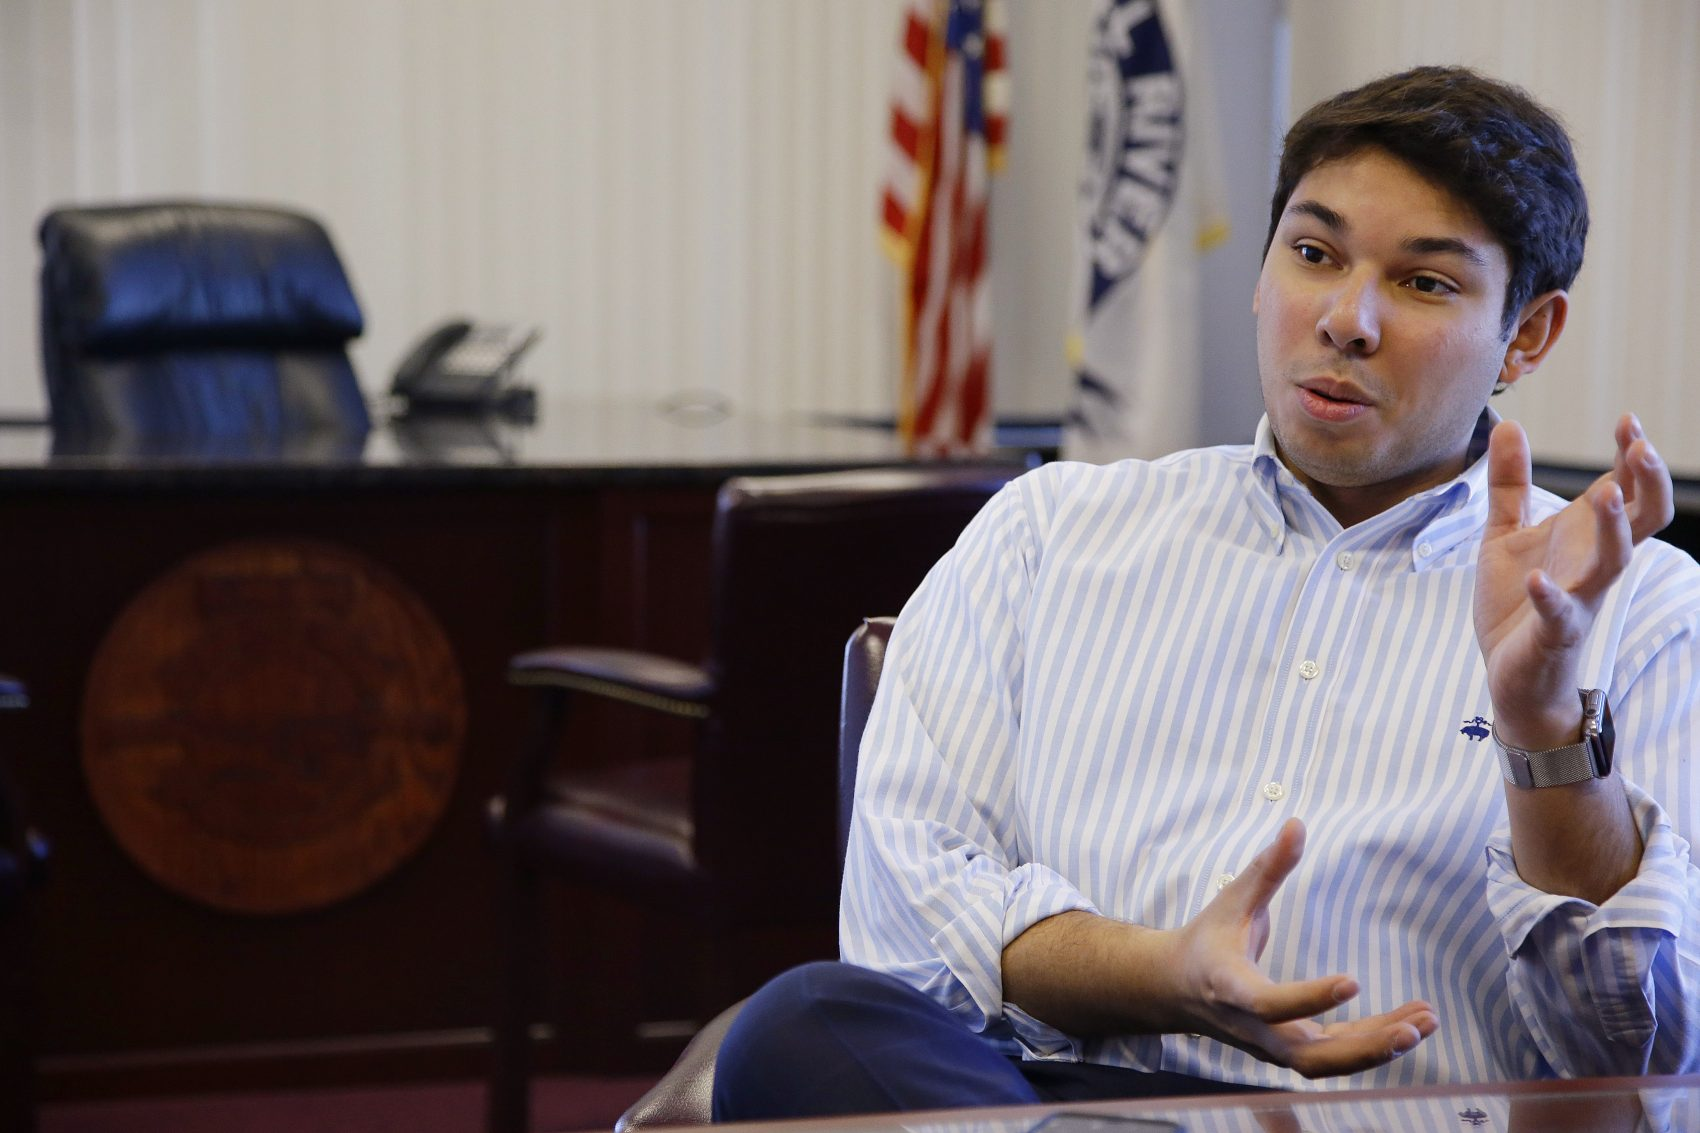 Embattled Fall River Mayor Wins Legal Challenge Against Election